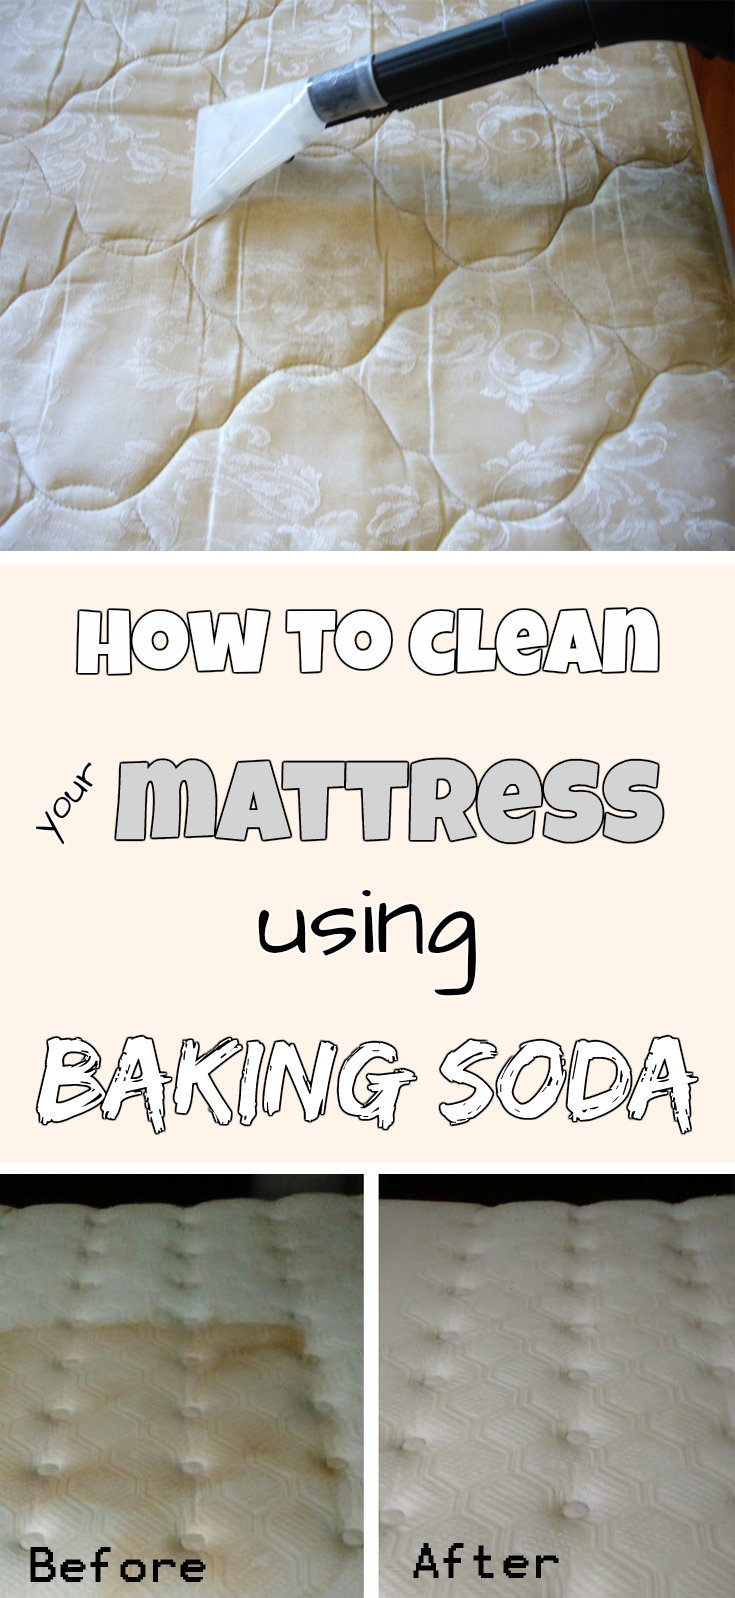 How To Clean Your Mattress Using Baking Soda Mycleaningsolutions Com